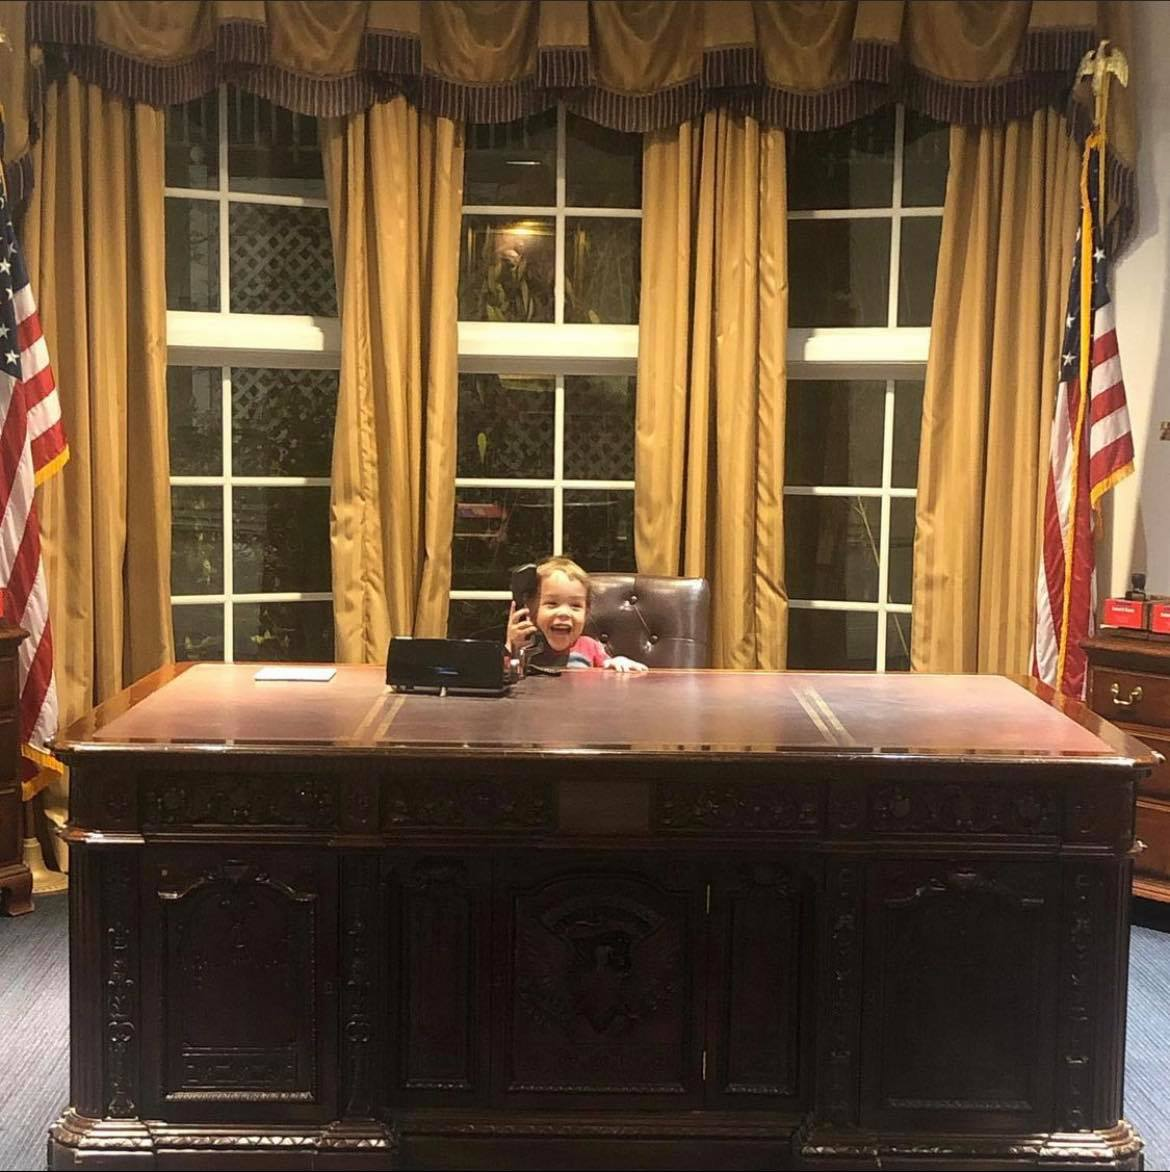 a child sitting at a desk in a replica of the Oval Office at the Magic House in Kirkwood, MO